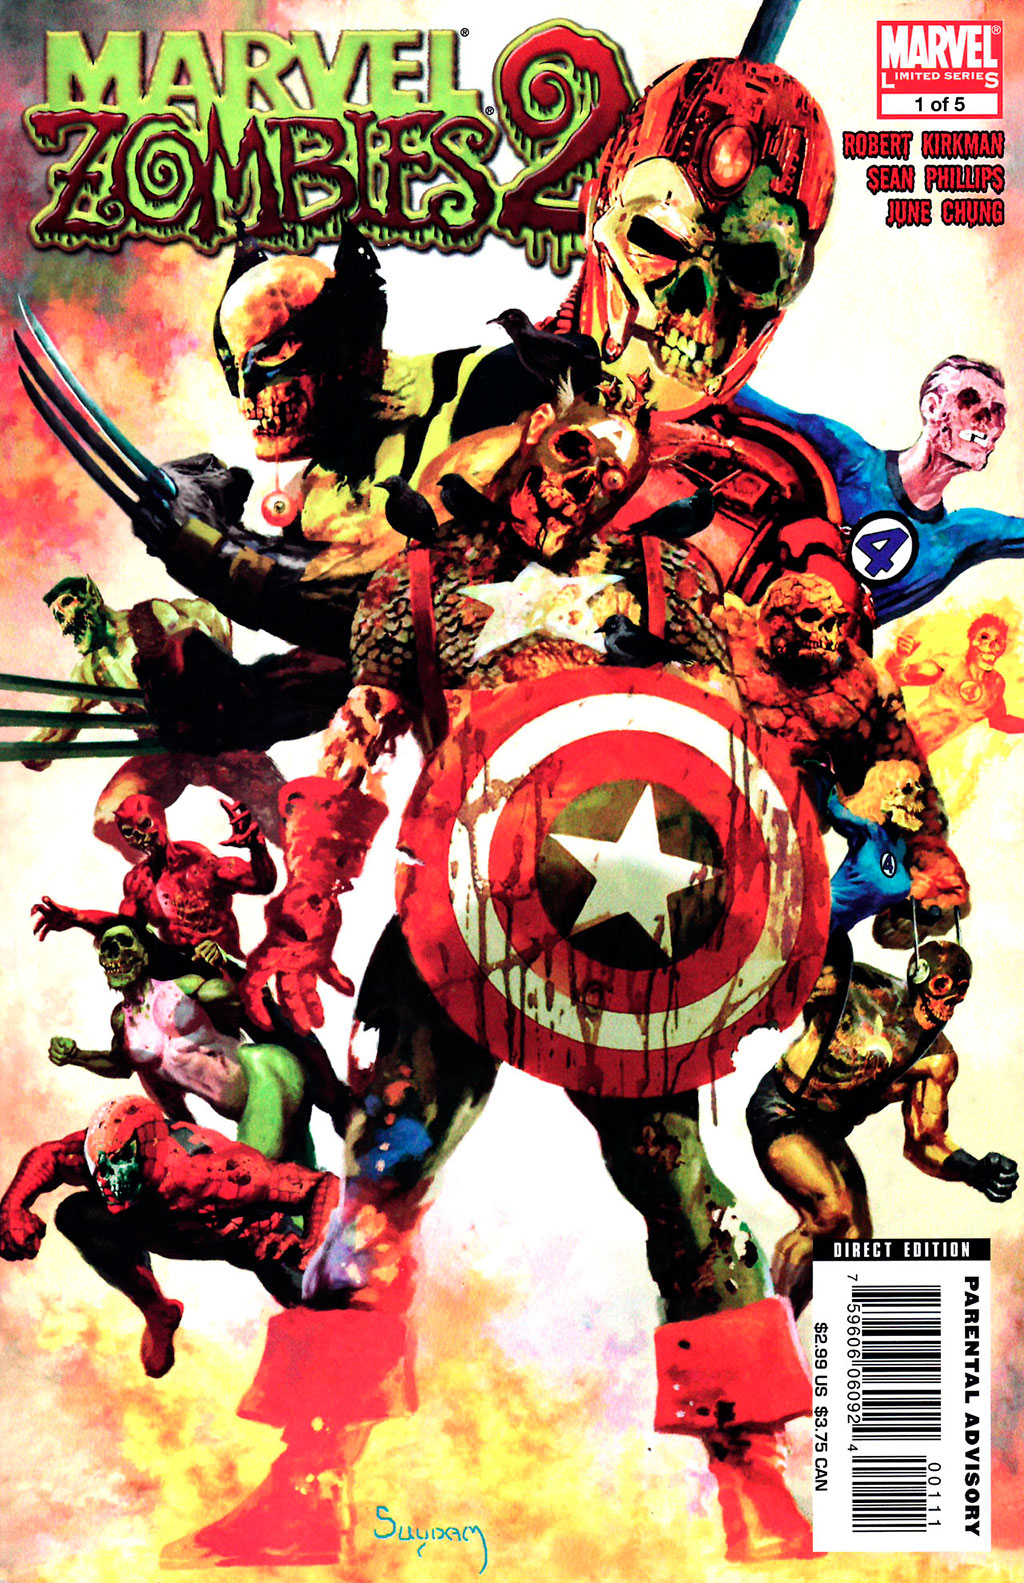 Marvel Zombies 2 vol. 1